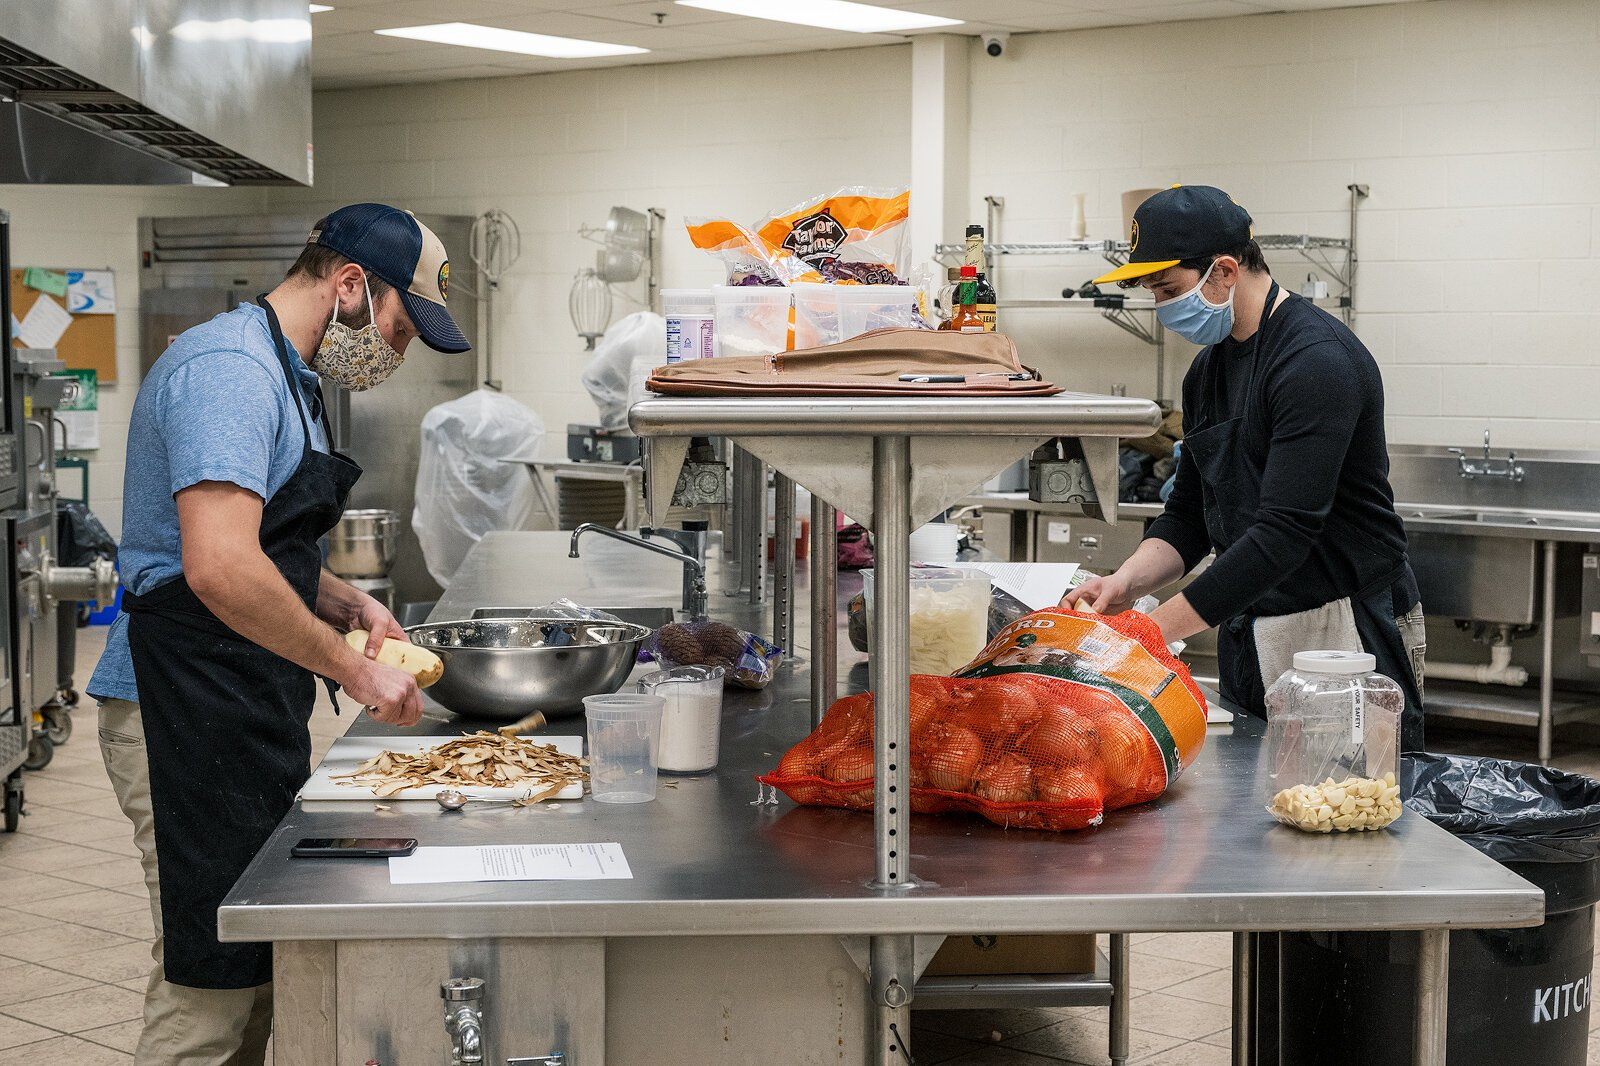 Forrest Maddox and Bryan Santos, owners of the White Pine Kitchen, prepare food.